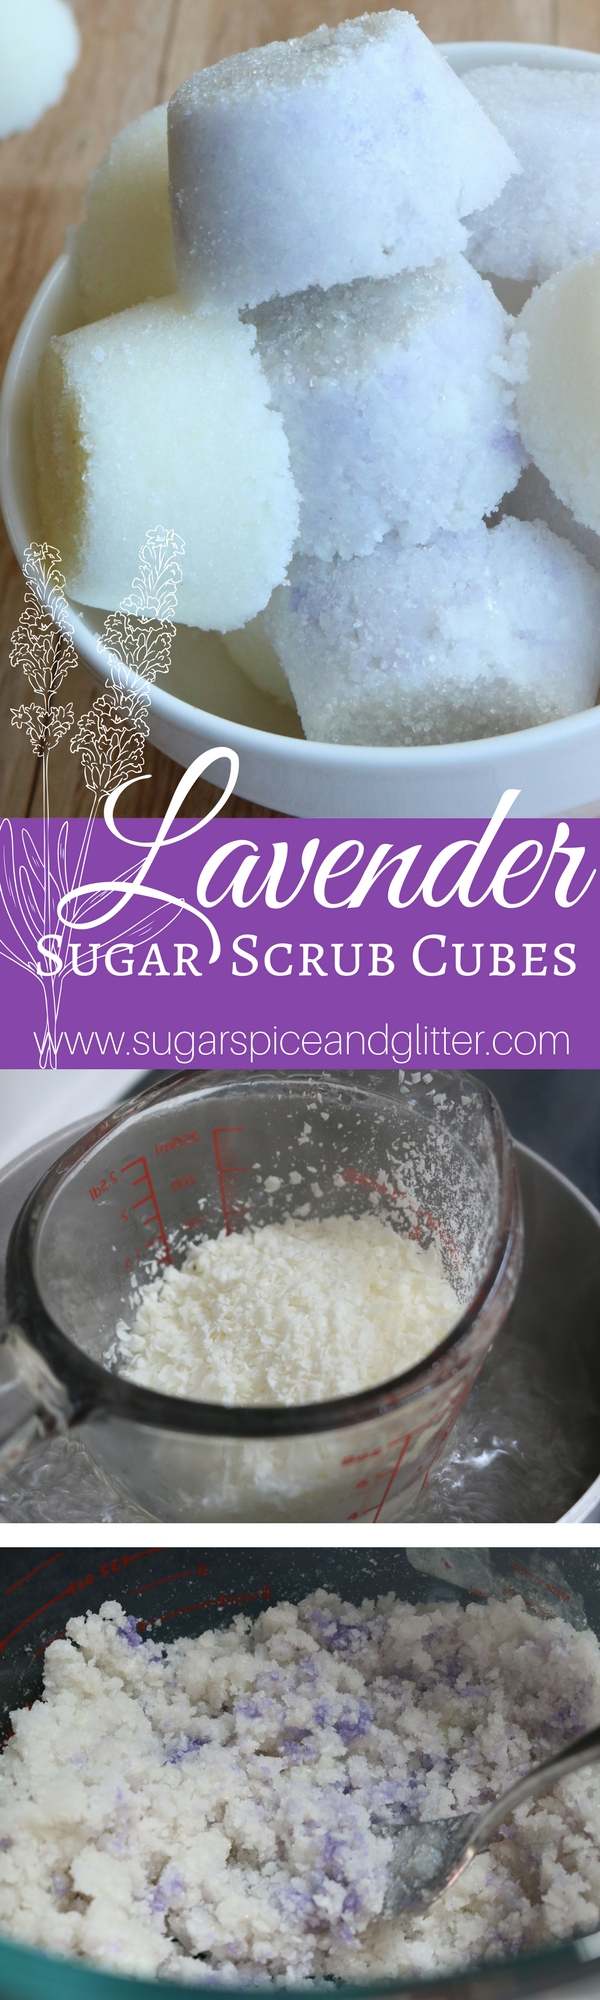 Homemade lavender sugar scrub cubes make a great homemade gift and are a good option for daily, gentle exfoliation. Add this to your homemade beauty product collection